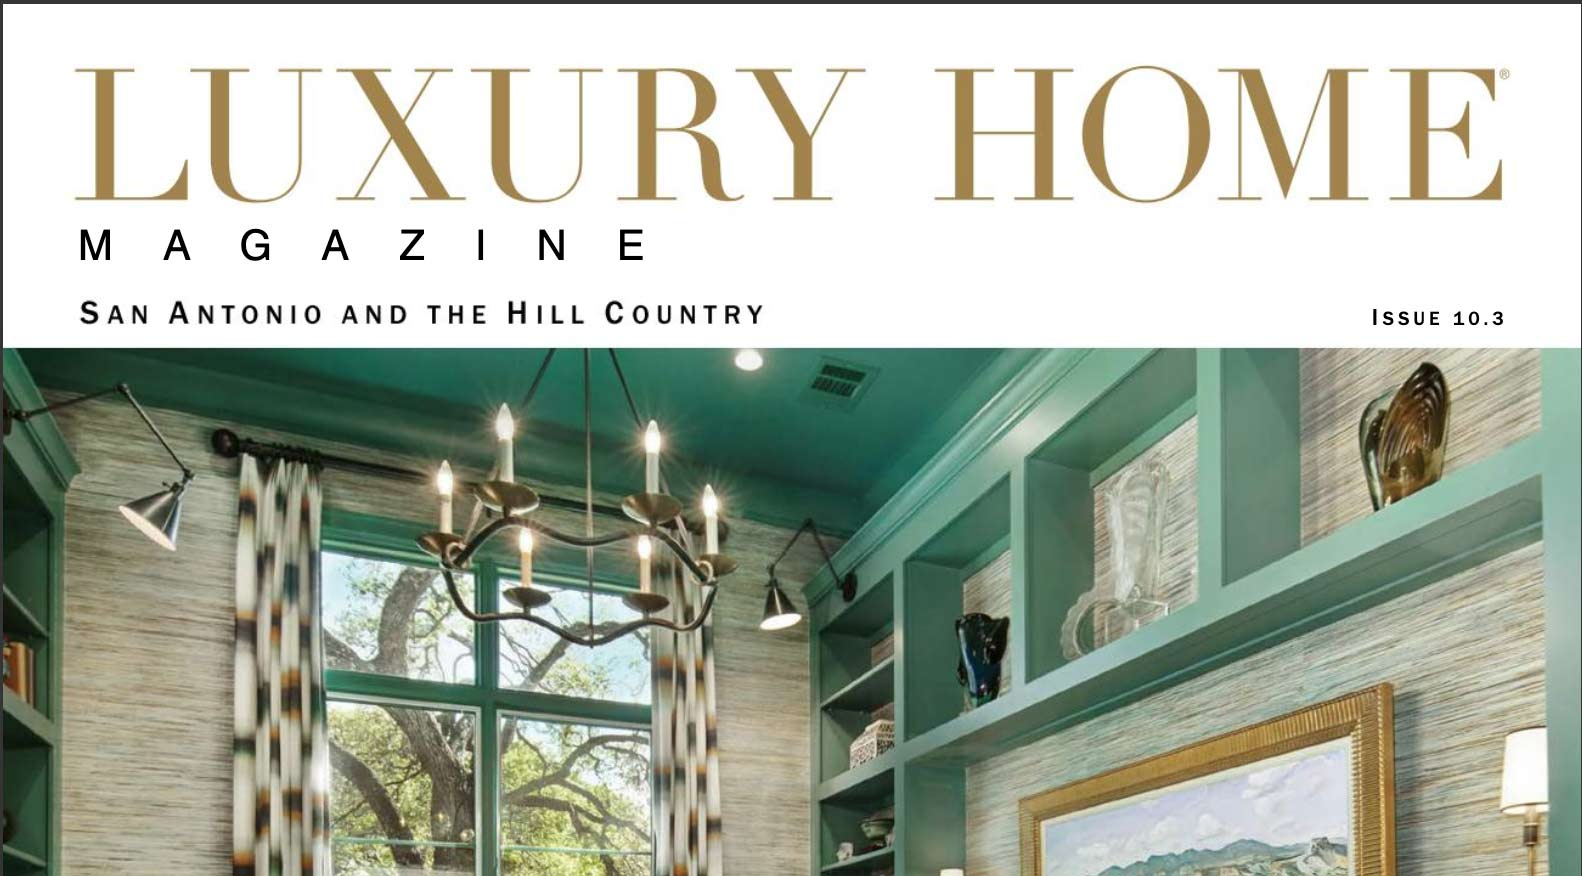 Luxury Home Magazine San Antonio and the Hill country